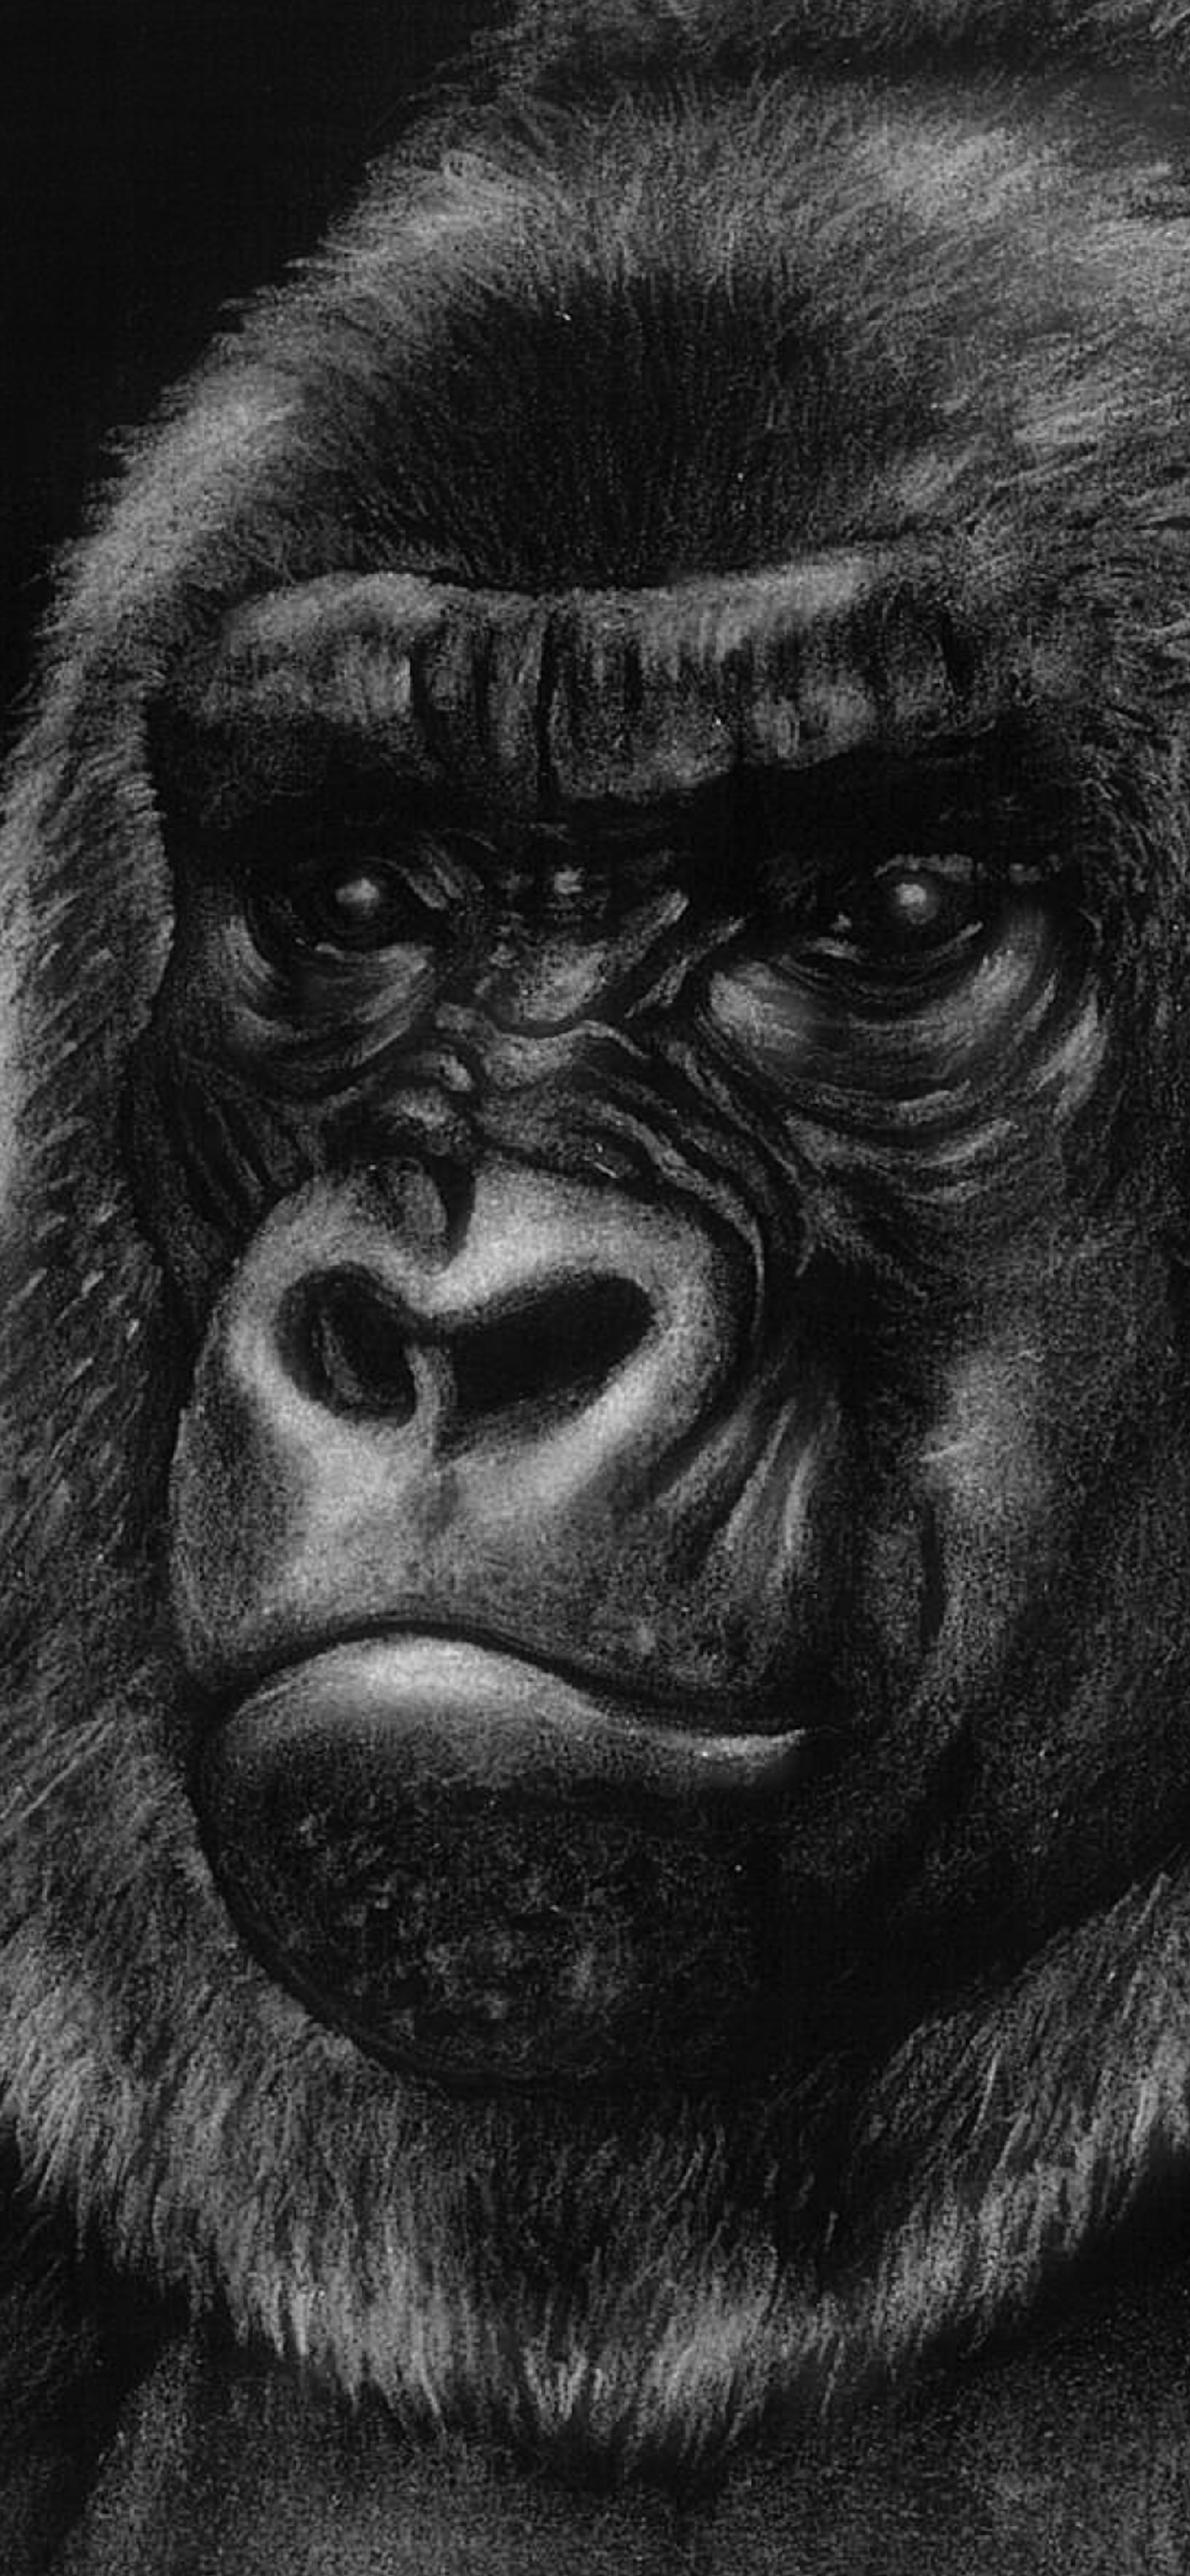 iPhone wallpapers illustration gorilla Fonds d'écran iPhone du 03/02/2020